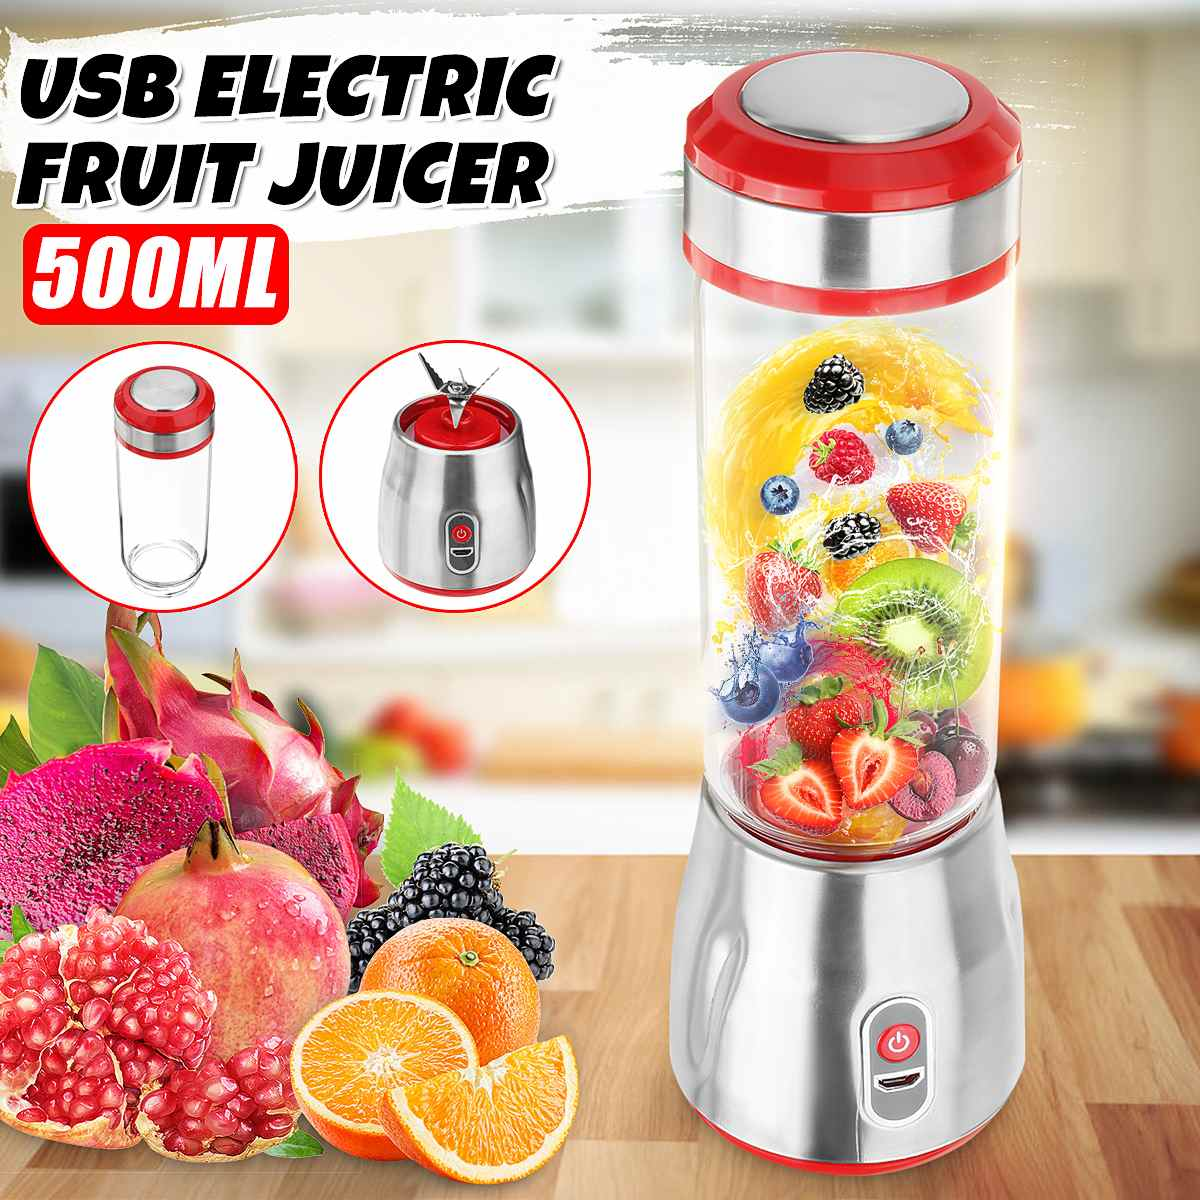 500ml Portable USB Electric Fruit Juicer Cup Machine Milkshake Smoothie Blenders Maker Juice Shaker Extractor Mixer Squeezer500ml Portable USB Electric Fruit Juicer Cup Machine Milkshake Smoothie Blenders Maker Juice Shaker Extractor Mixer Squeezer